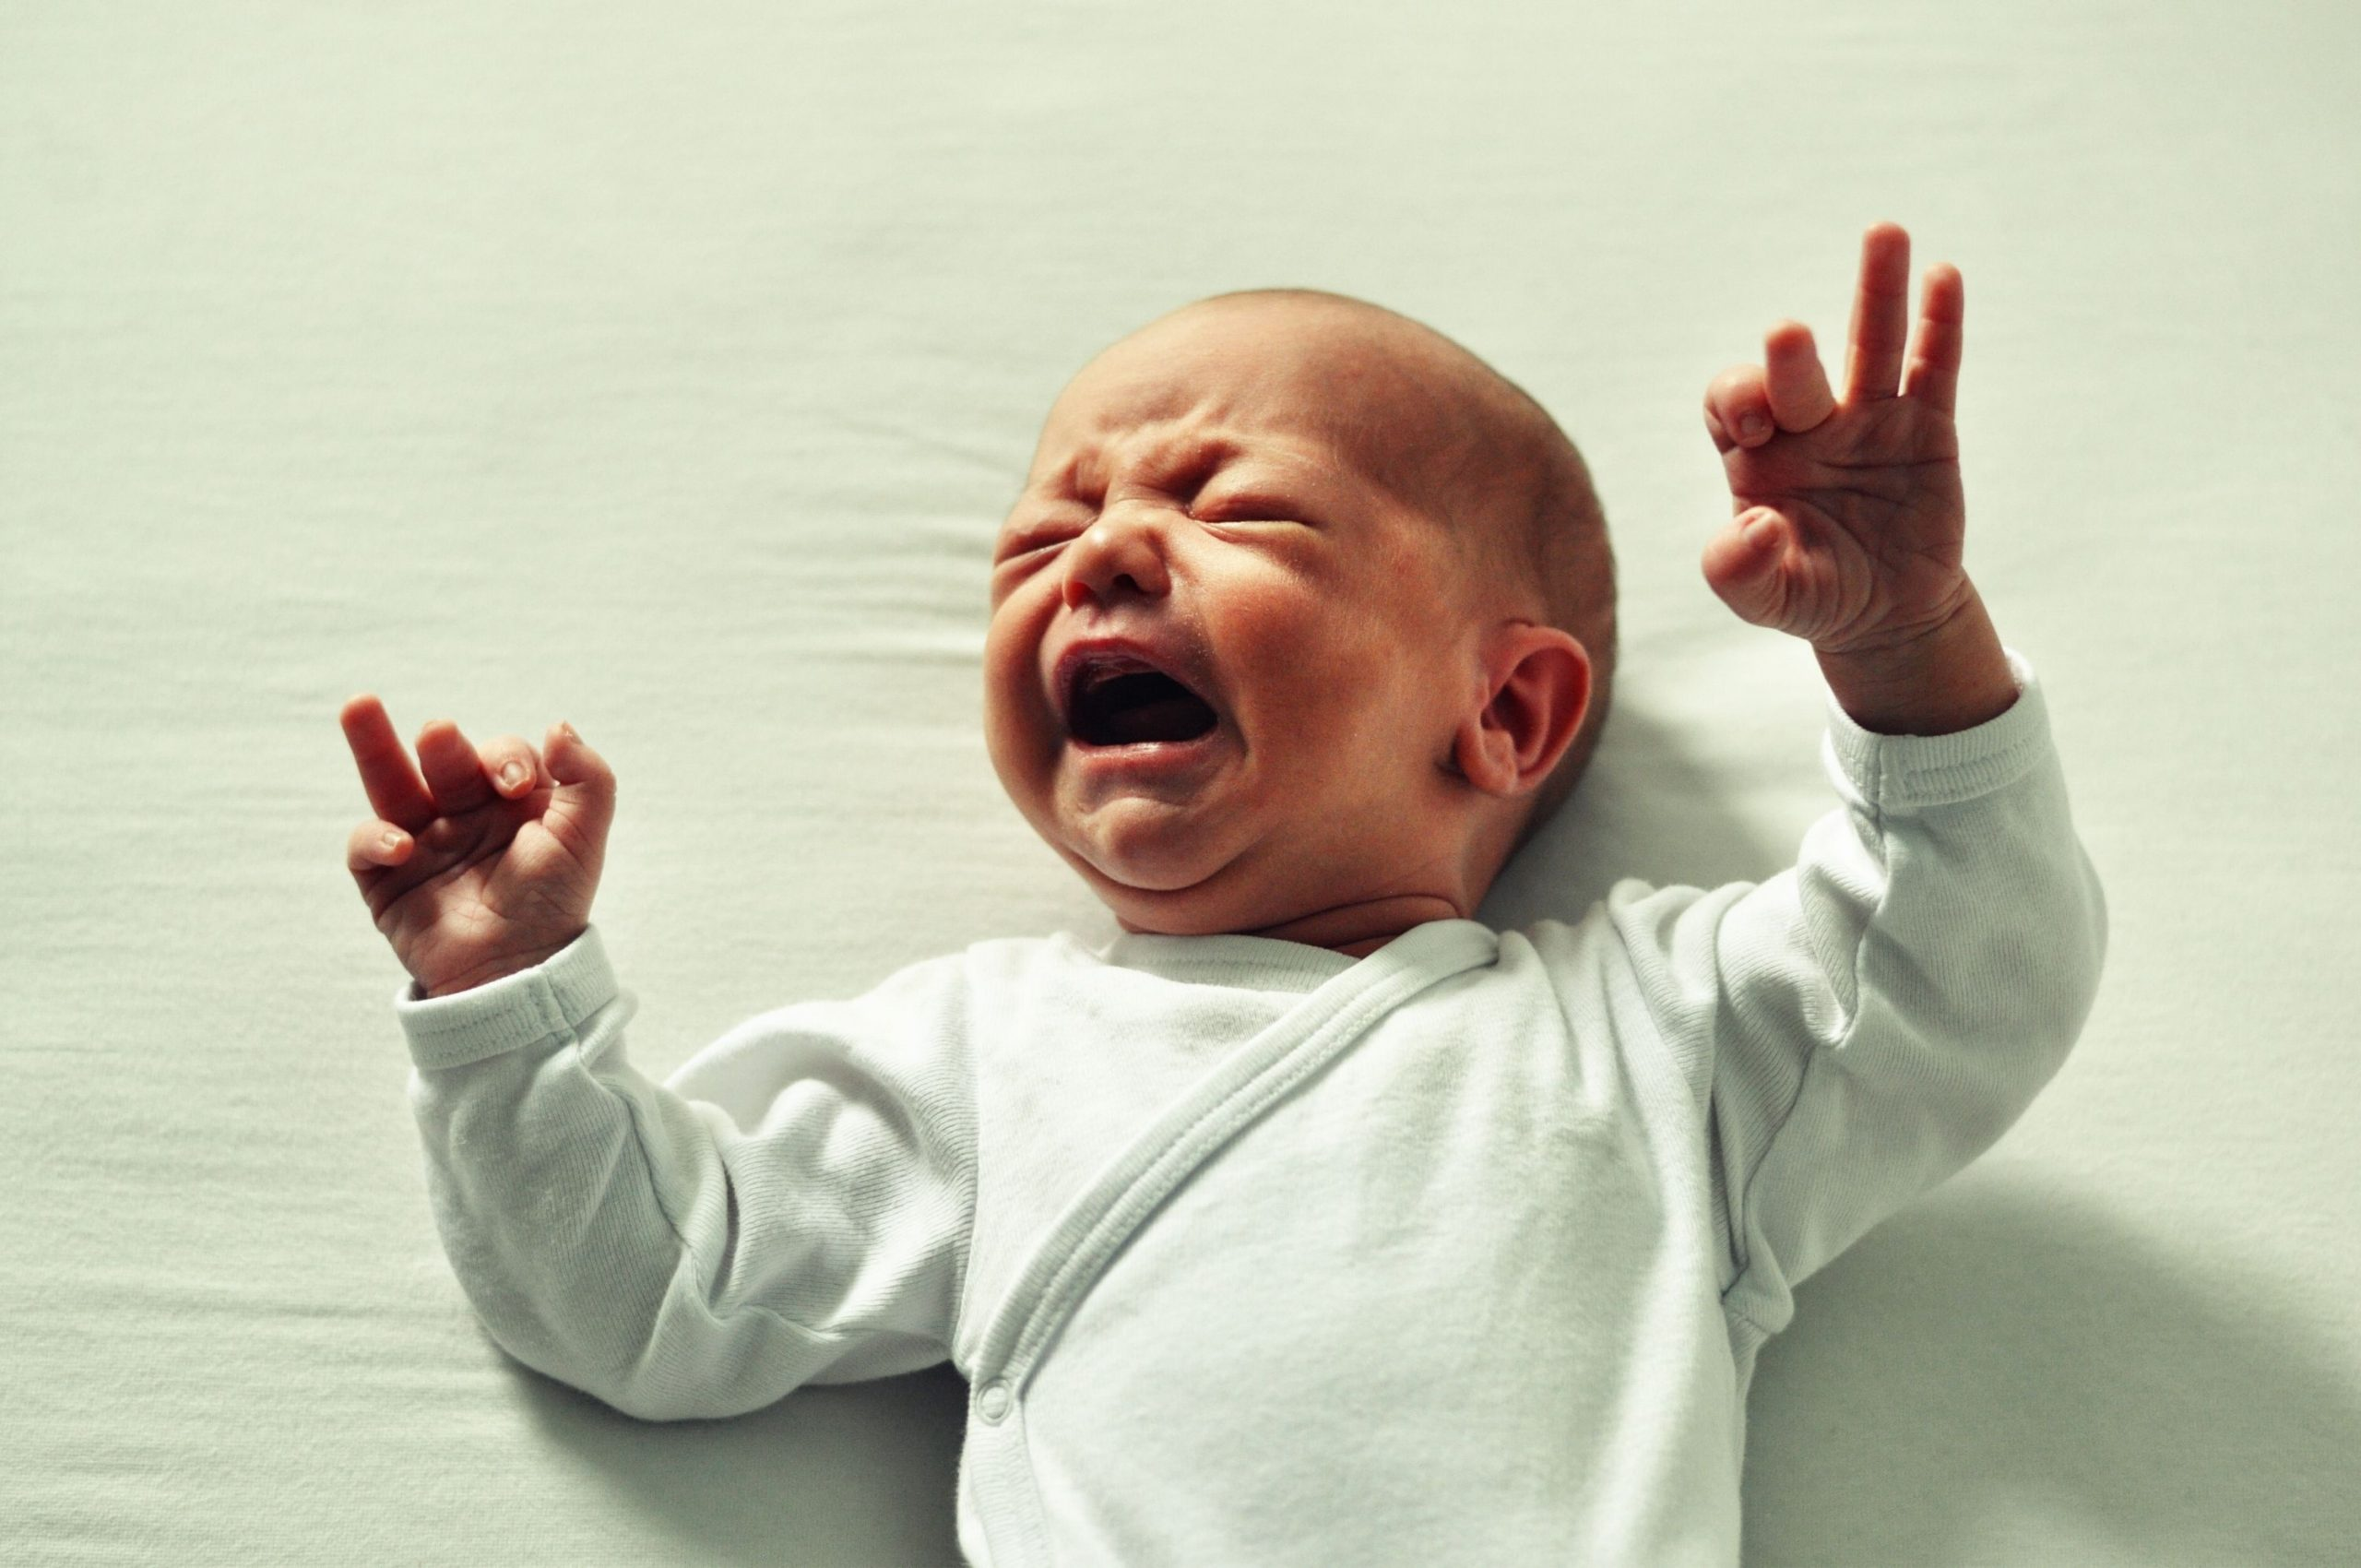 Leaving babies to cry is cruel